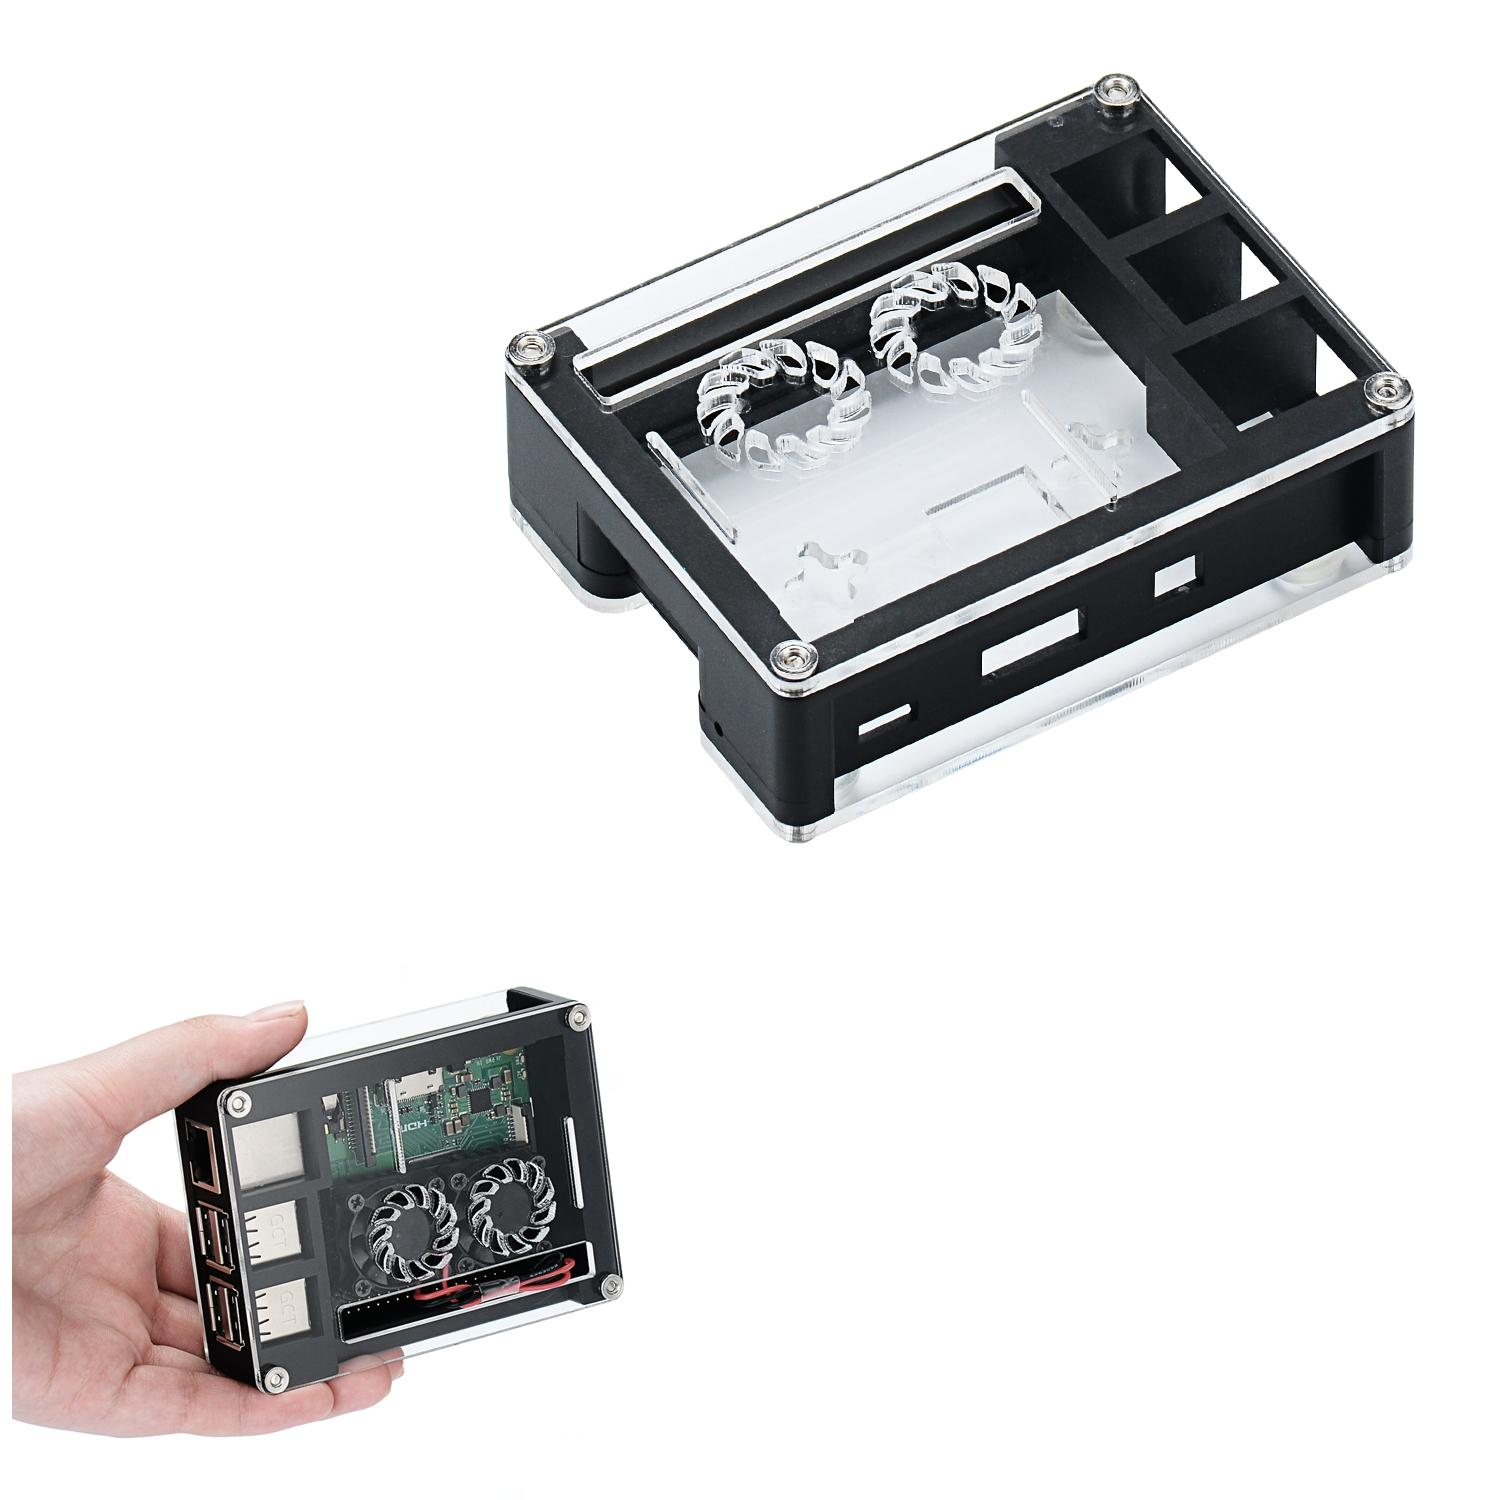 Black Acrylic Case Support Dual Cooling Fans For Raspberry Pi 3B+ Board